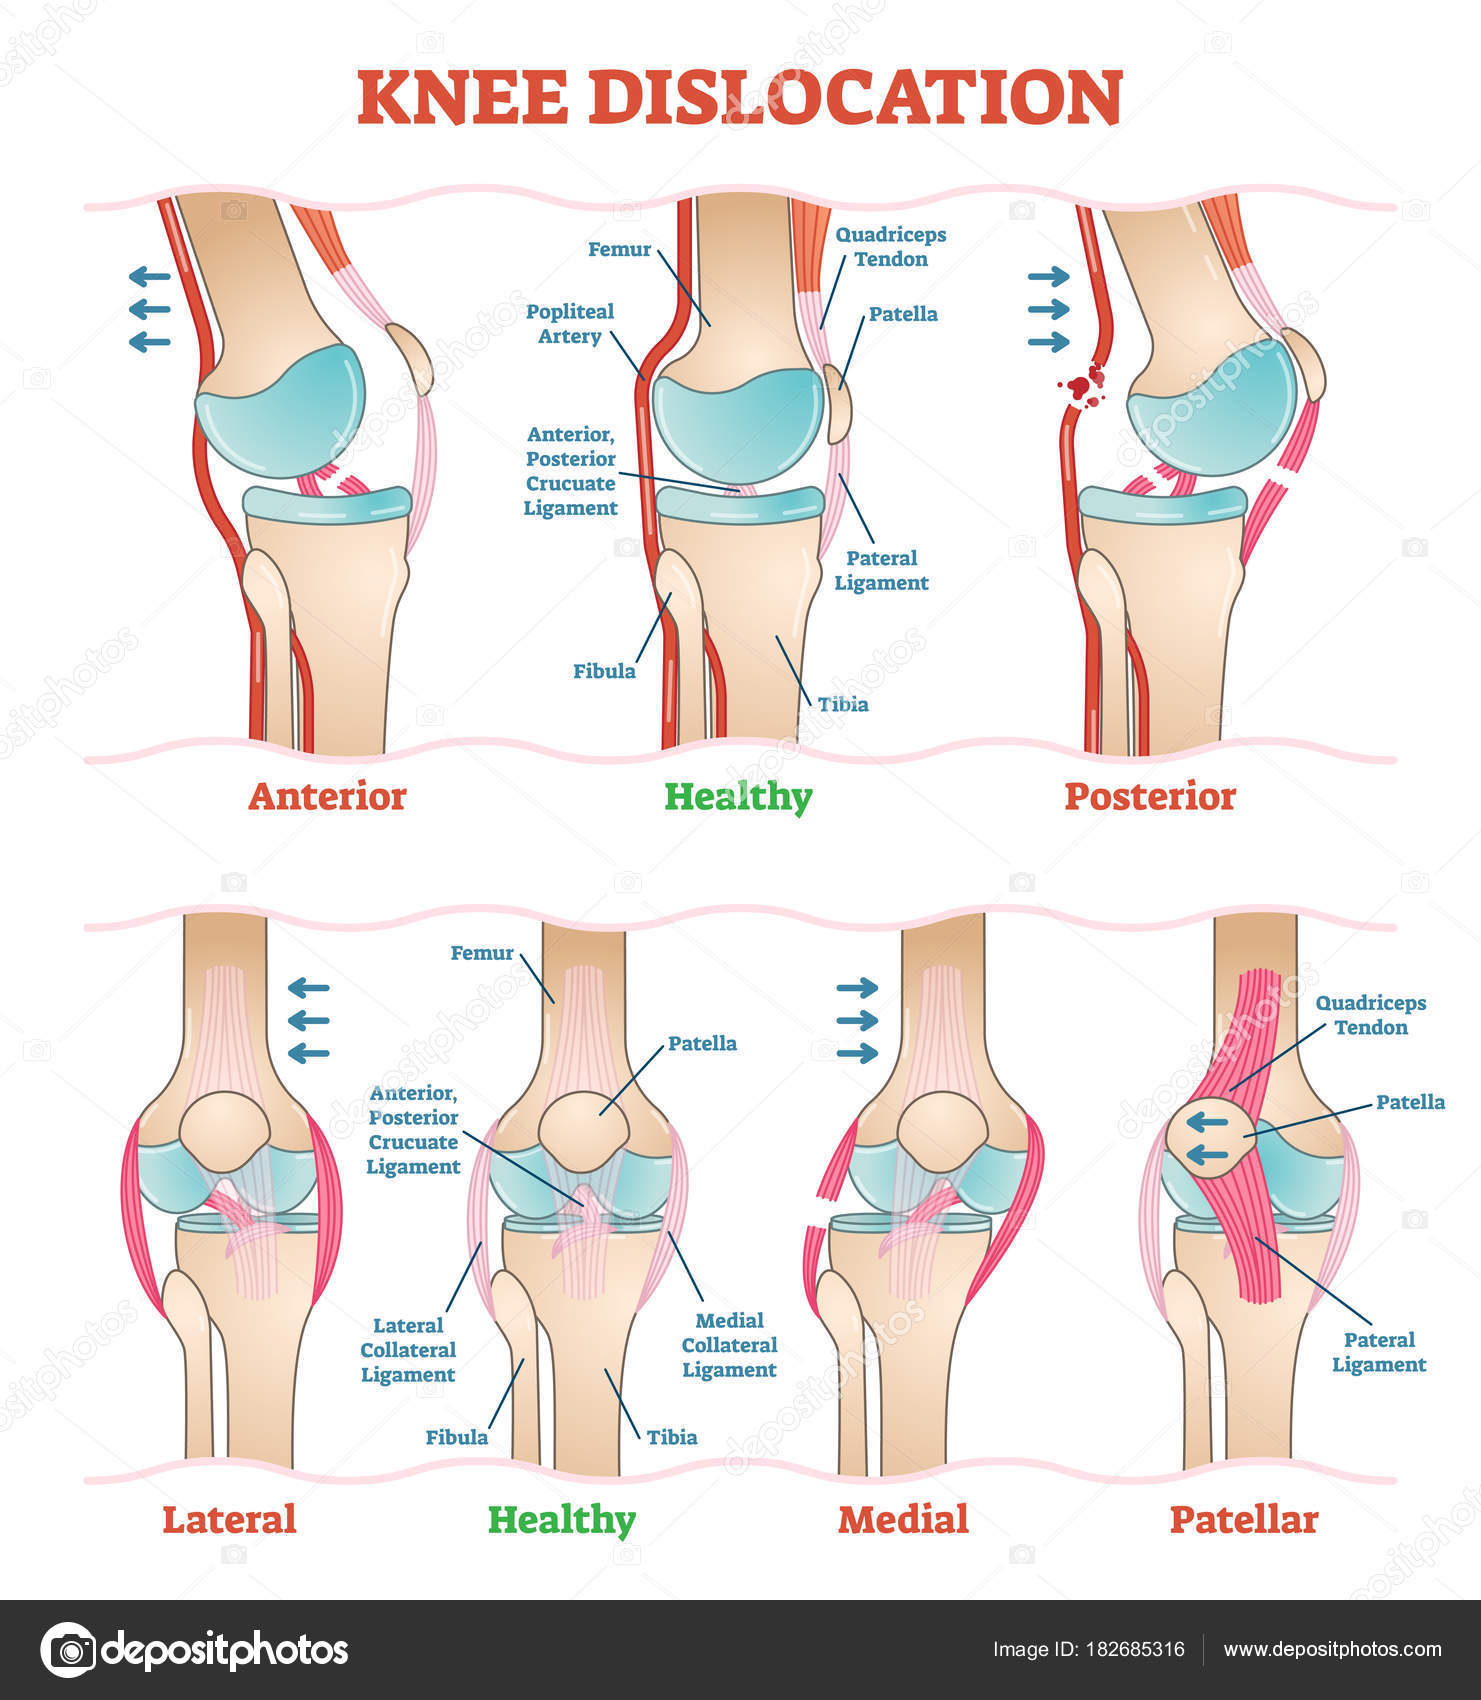 Knee dislocations medical vector illustration diagrams anatomical knee dislocations medical vector illustration diagrams anatomical knee injury types scheme stock ccuart Gallery